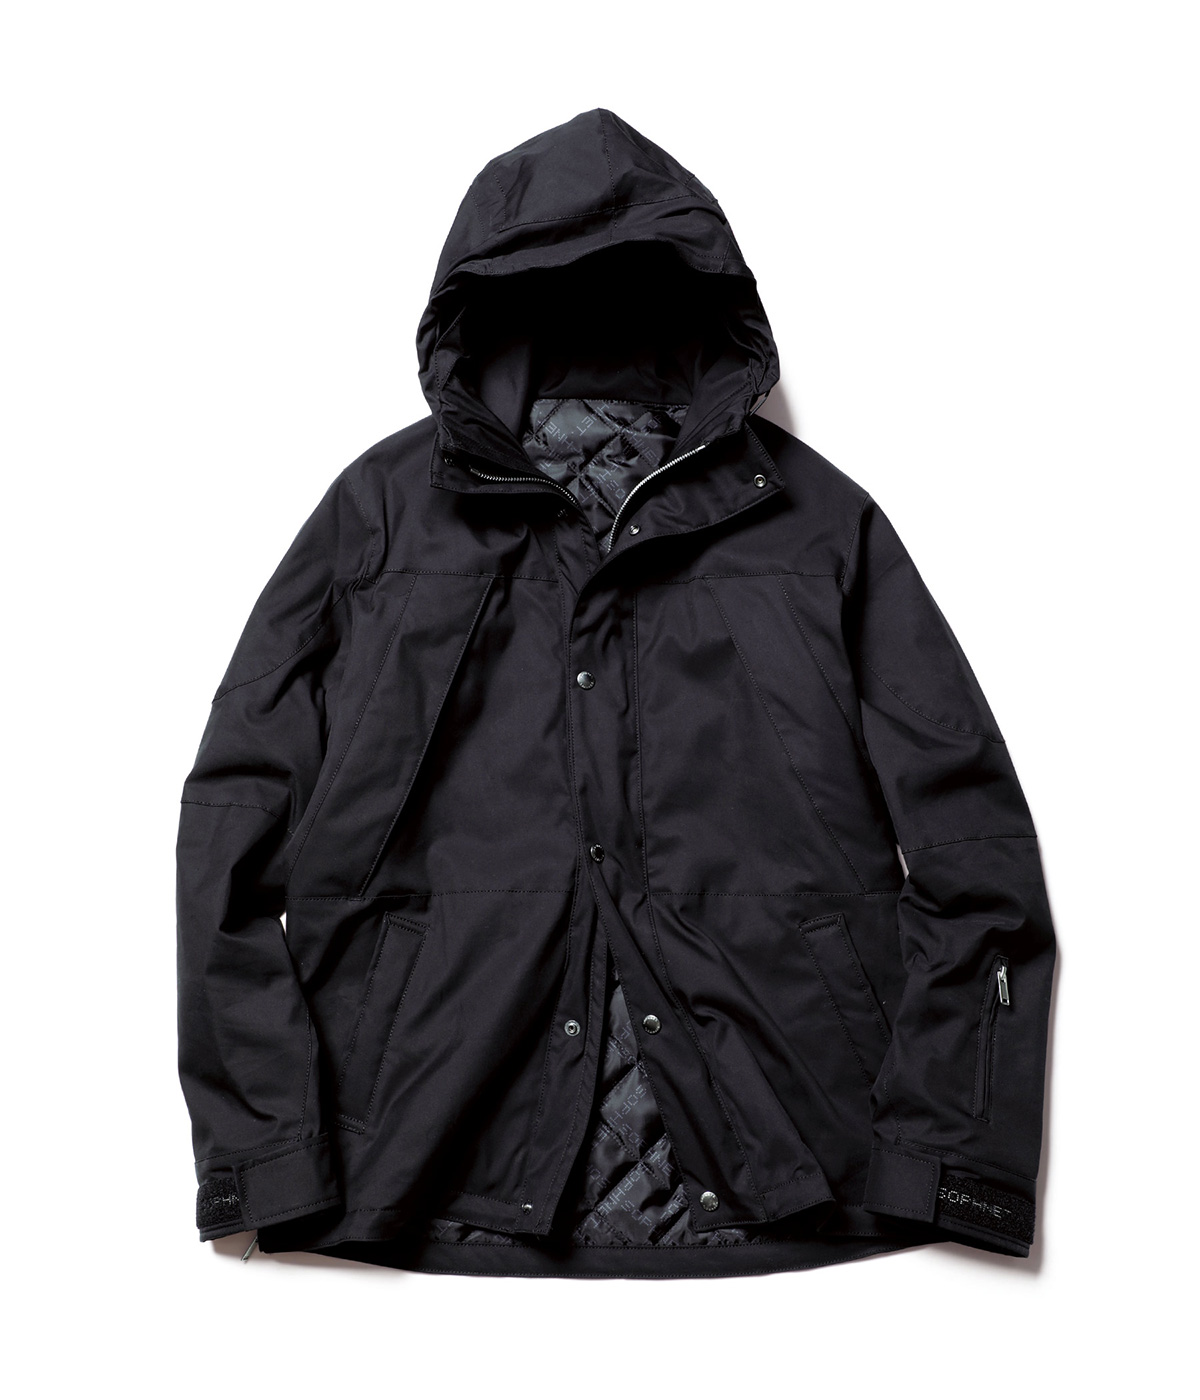 PADDED MOUNTAIN PARKA